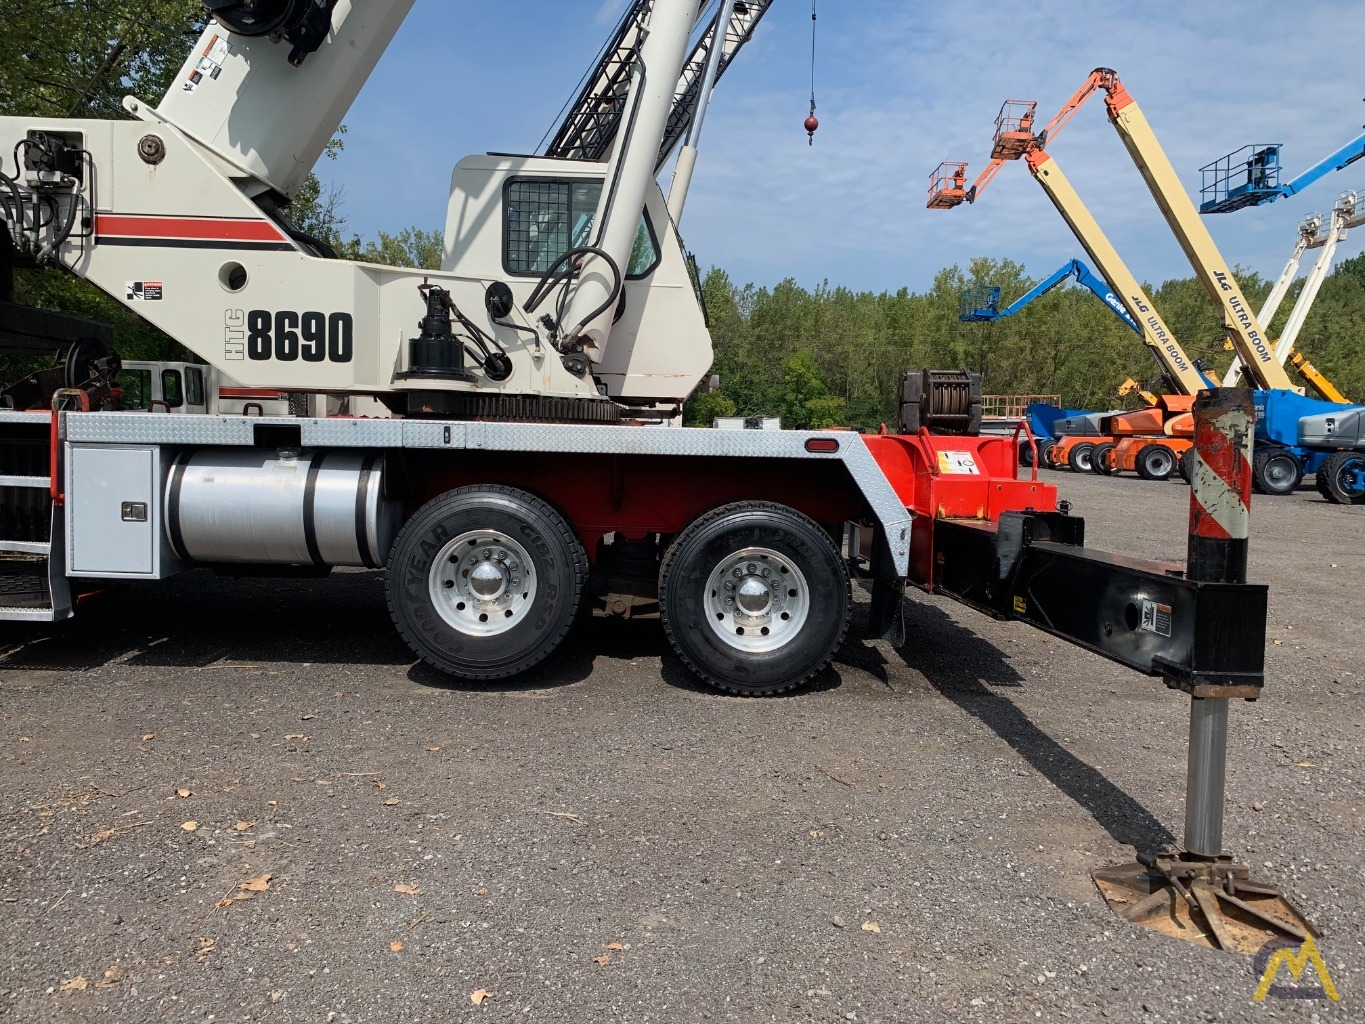 2007 Link-Belt HTC-8690 90-Ton Telescopic Truck Crane w/ Detroit Engine 10